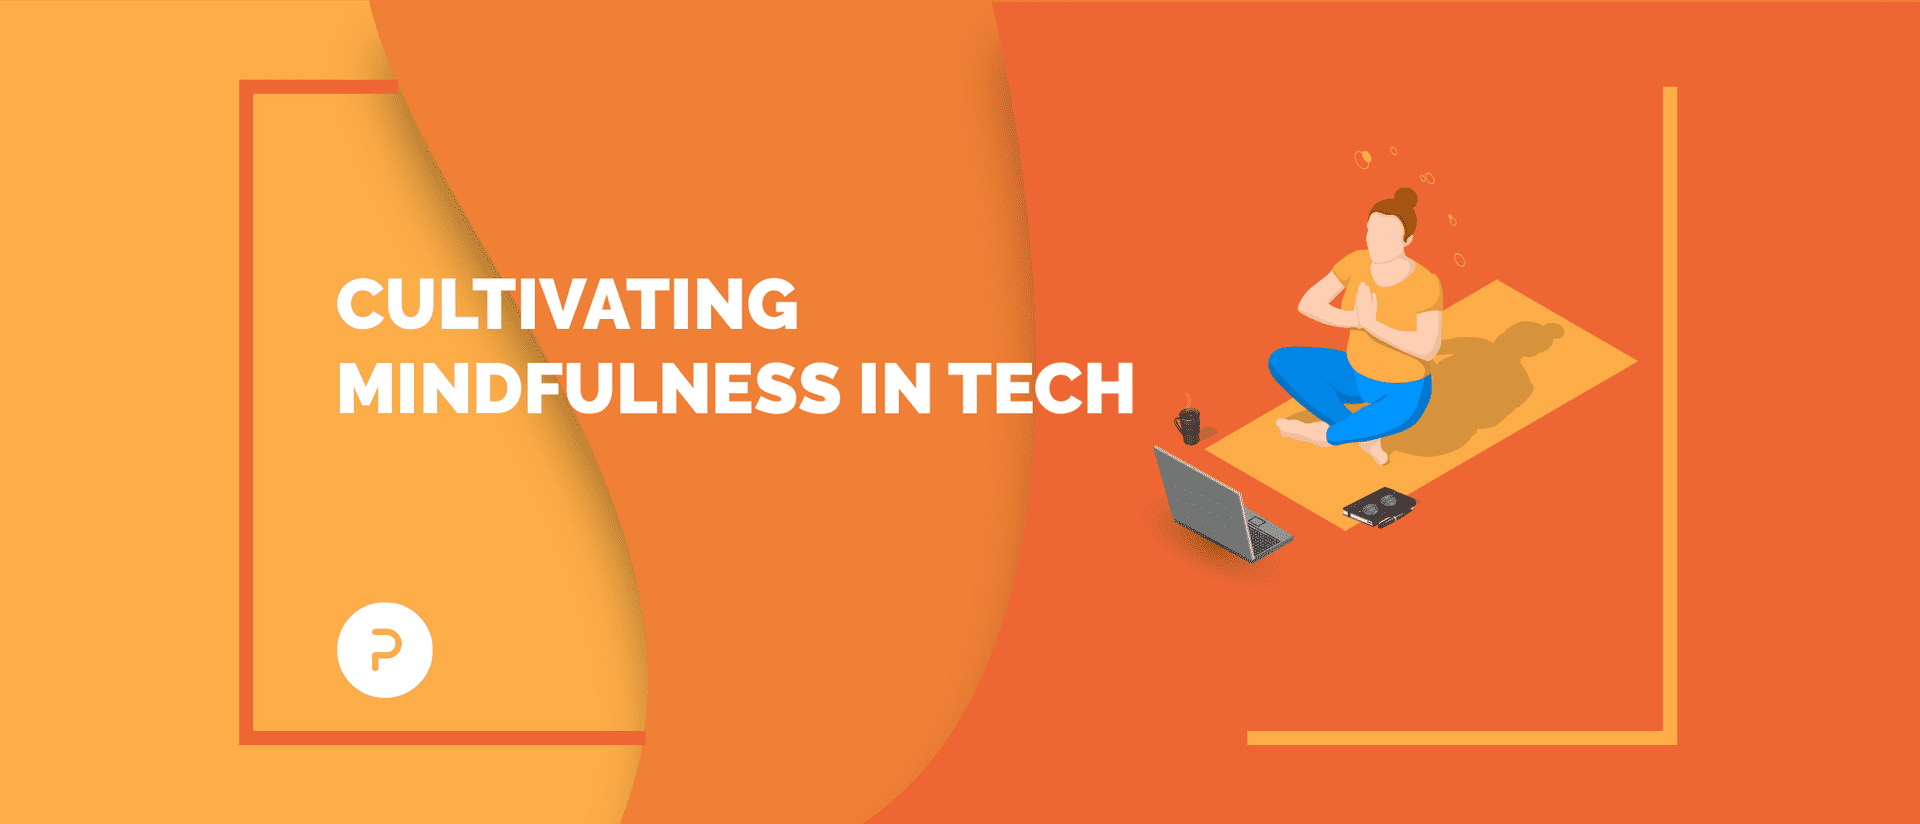 Mindfulness: The Super Skill for Every Tech Professional